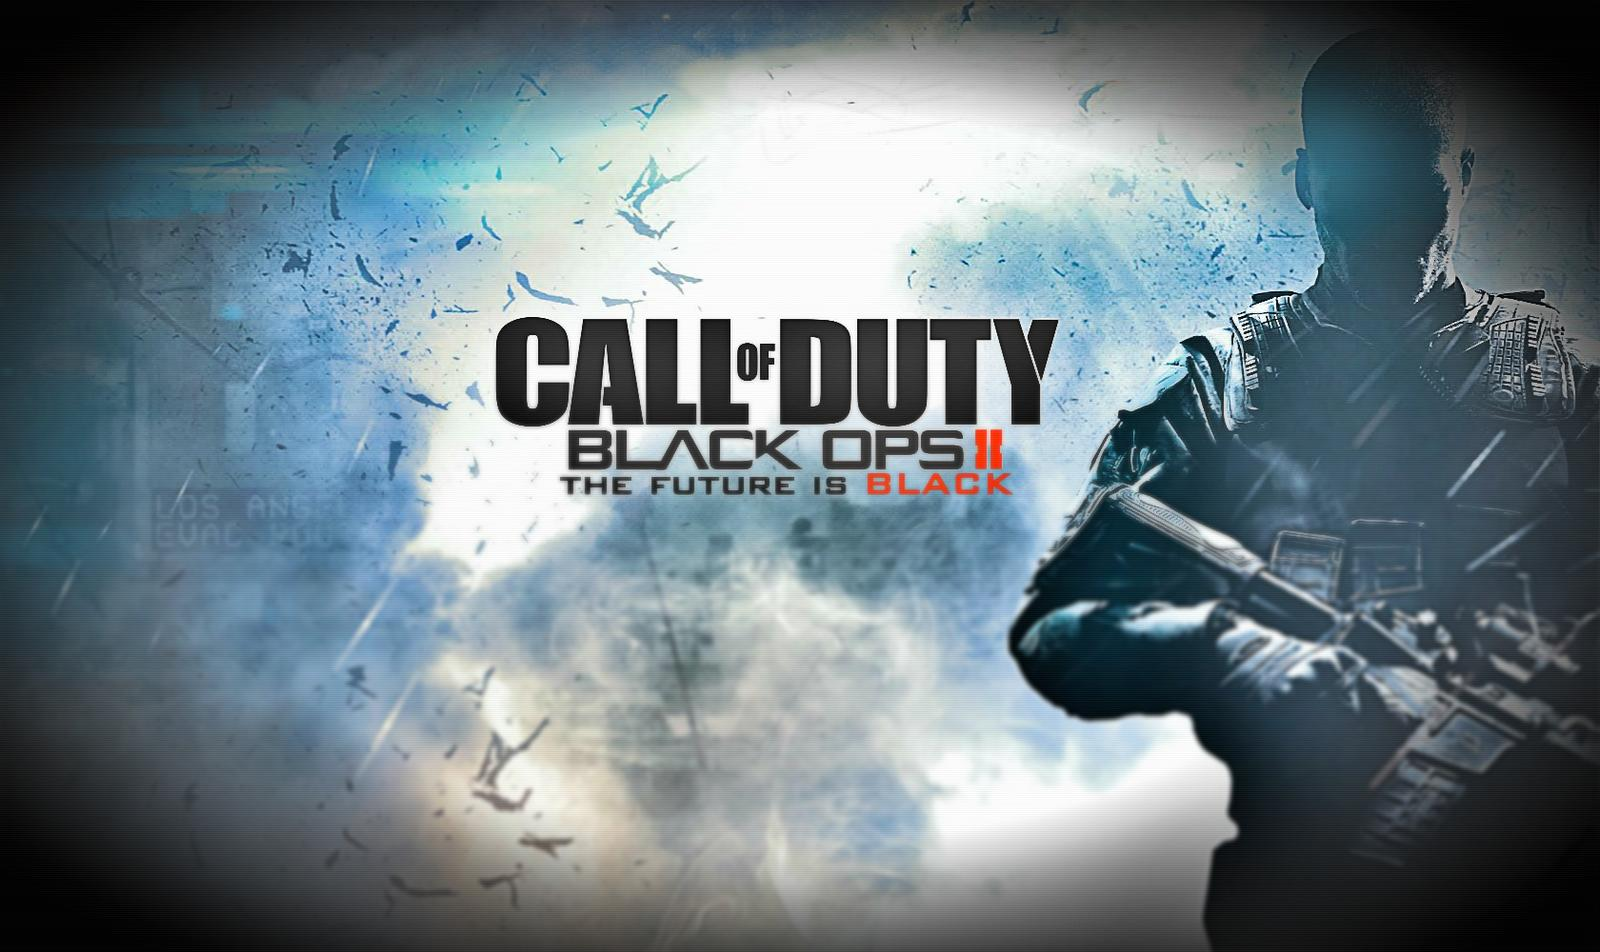 Call of Duty (COD) Black Ops 4 CD Key PC Game For Free Download